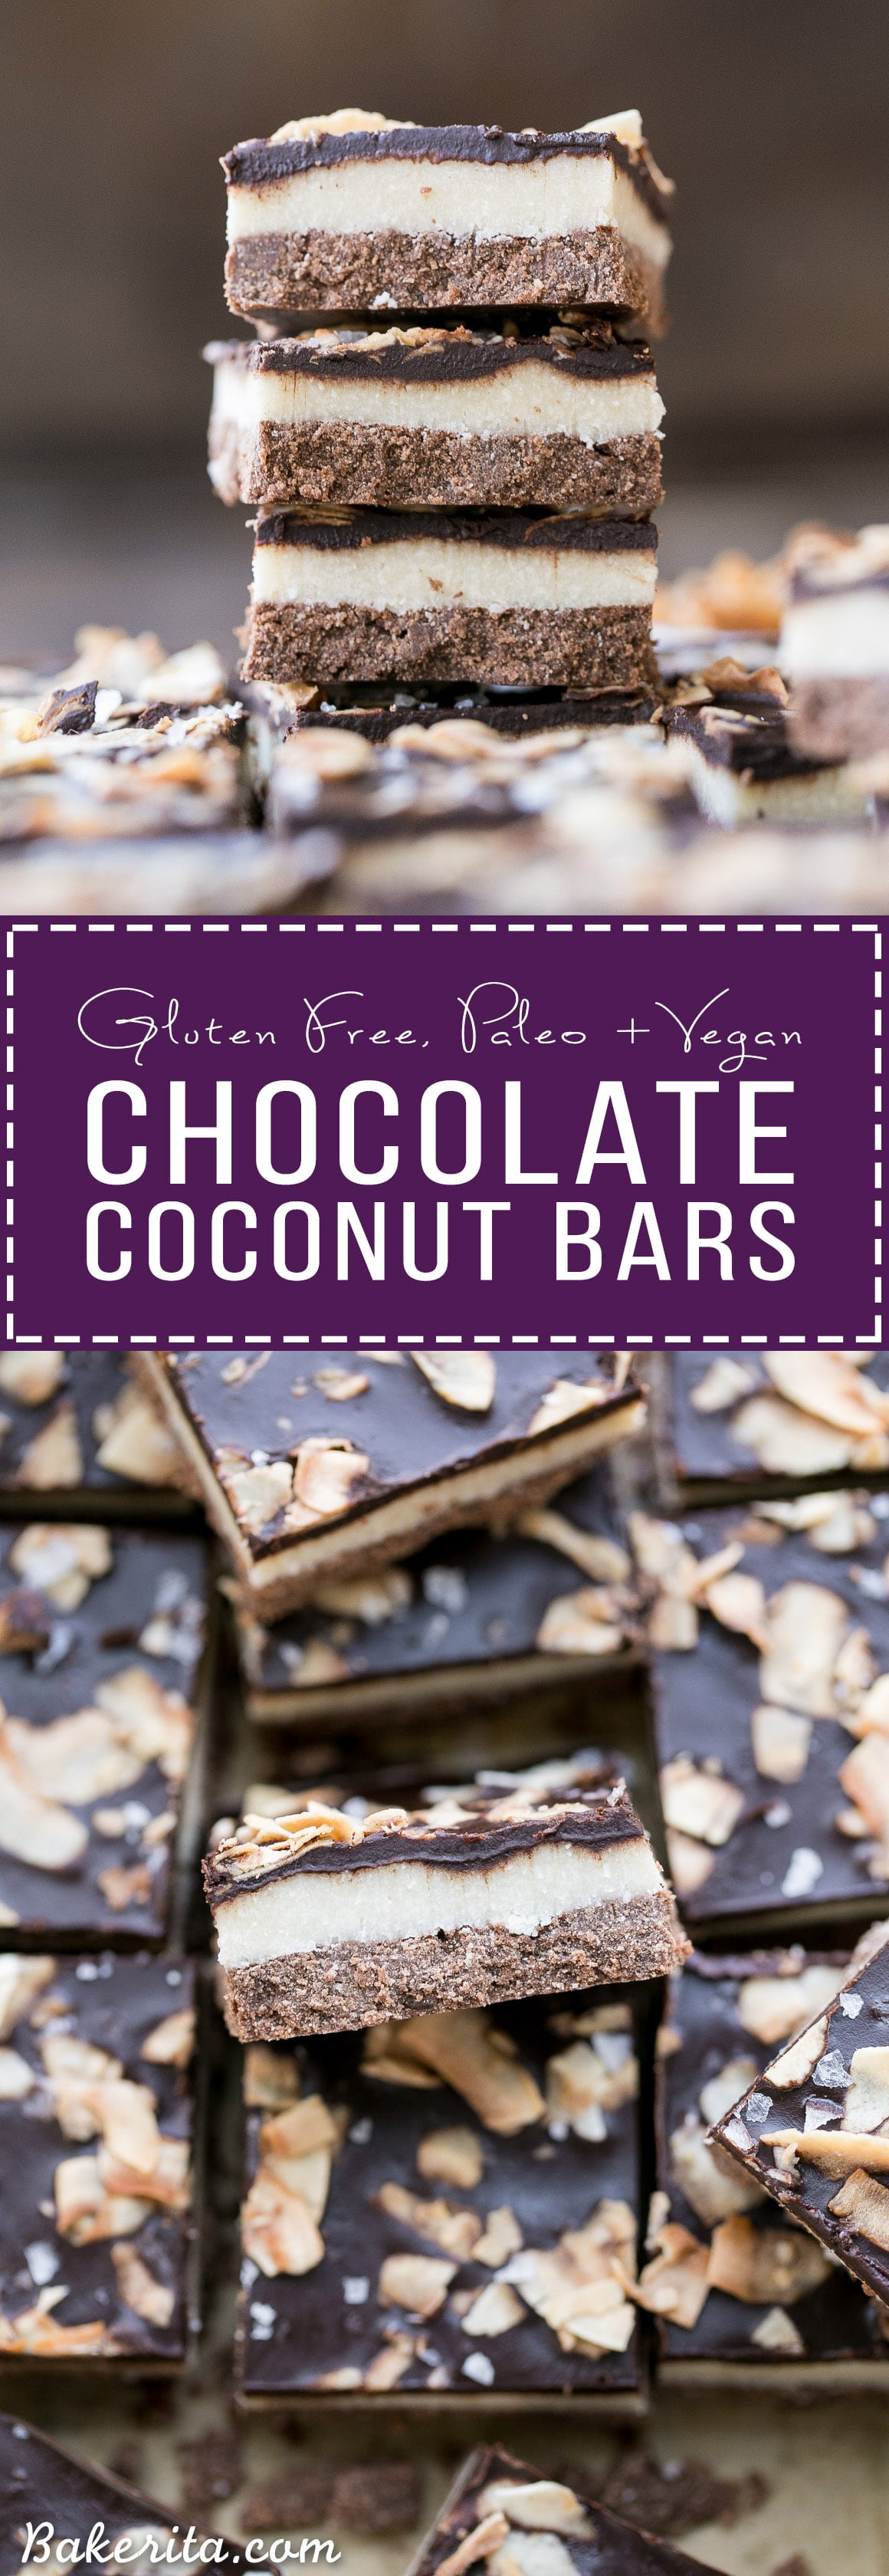 These Chocolate Coconut Bars have three irresistible layers - a chocolate shortbread crust, a melt-in-your-mouth coconut butter filling, and a chocolate topping with toasted coconut! Any coconut lover is going to love these gluten-free, Paleo + vegan dessert bars.